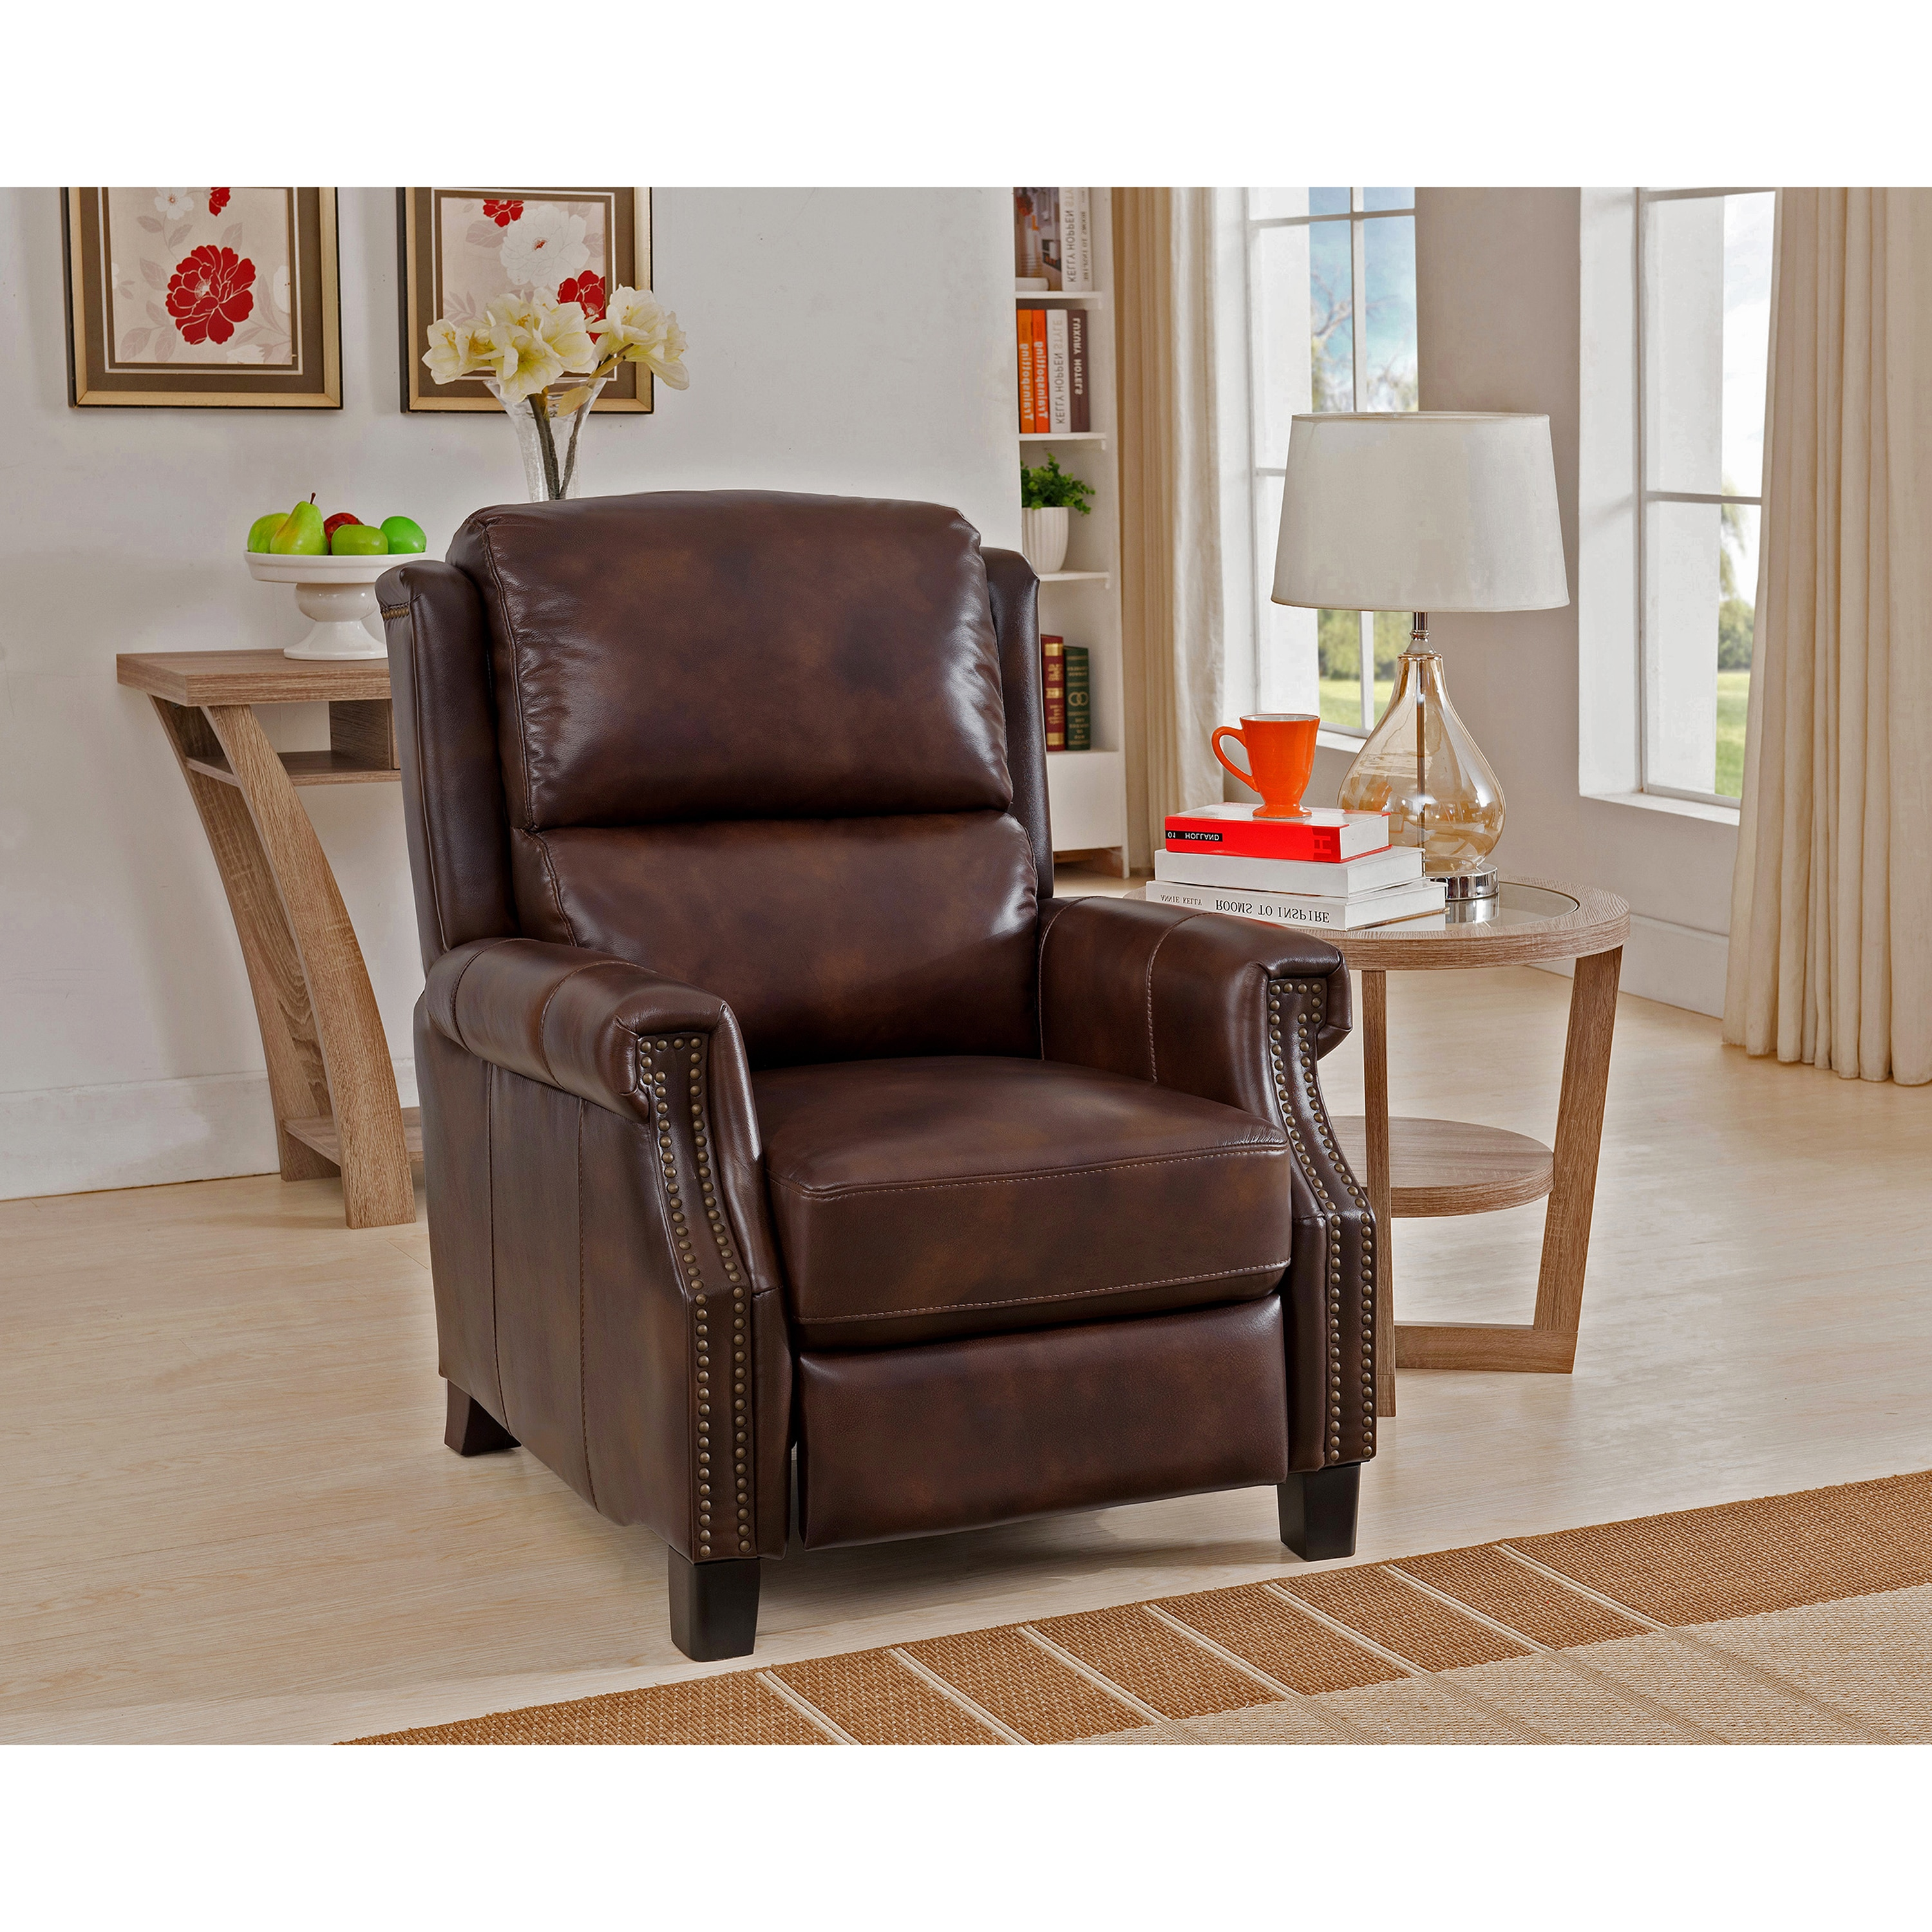 free living shop ethan chairs shipping allen null recliners front us furniture and quick randall recliner en room leather chair fabric